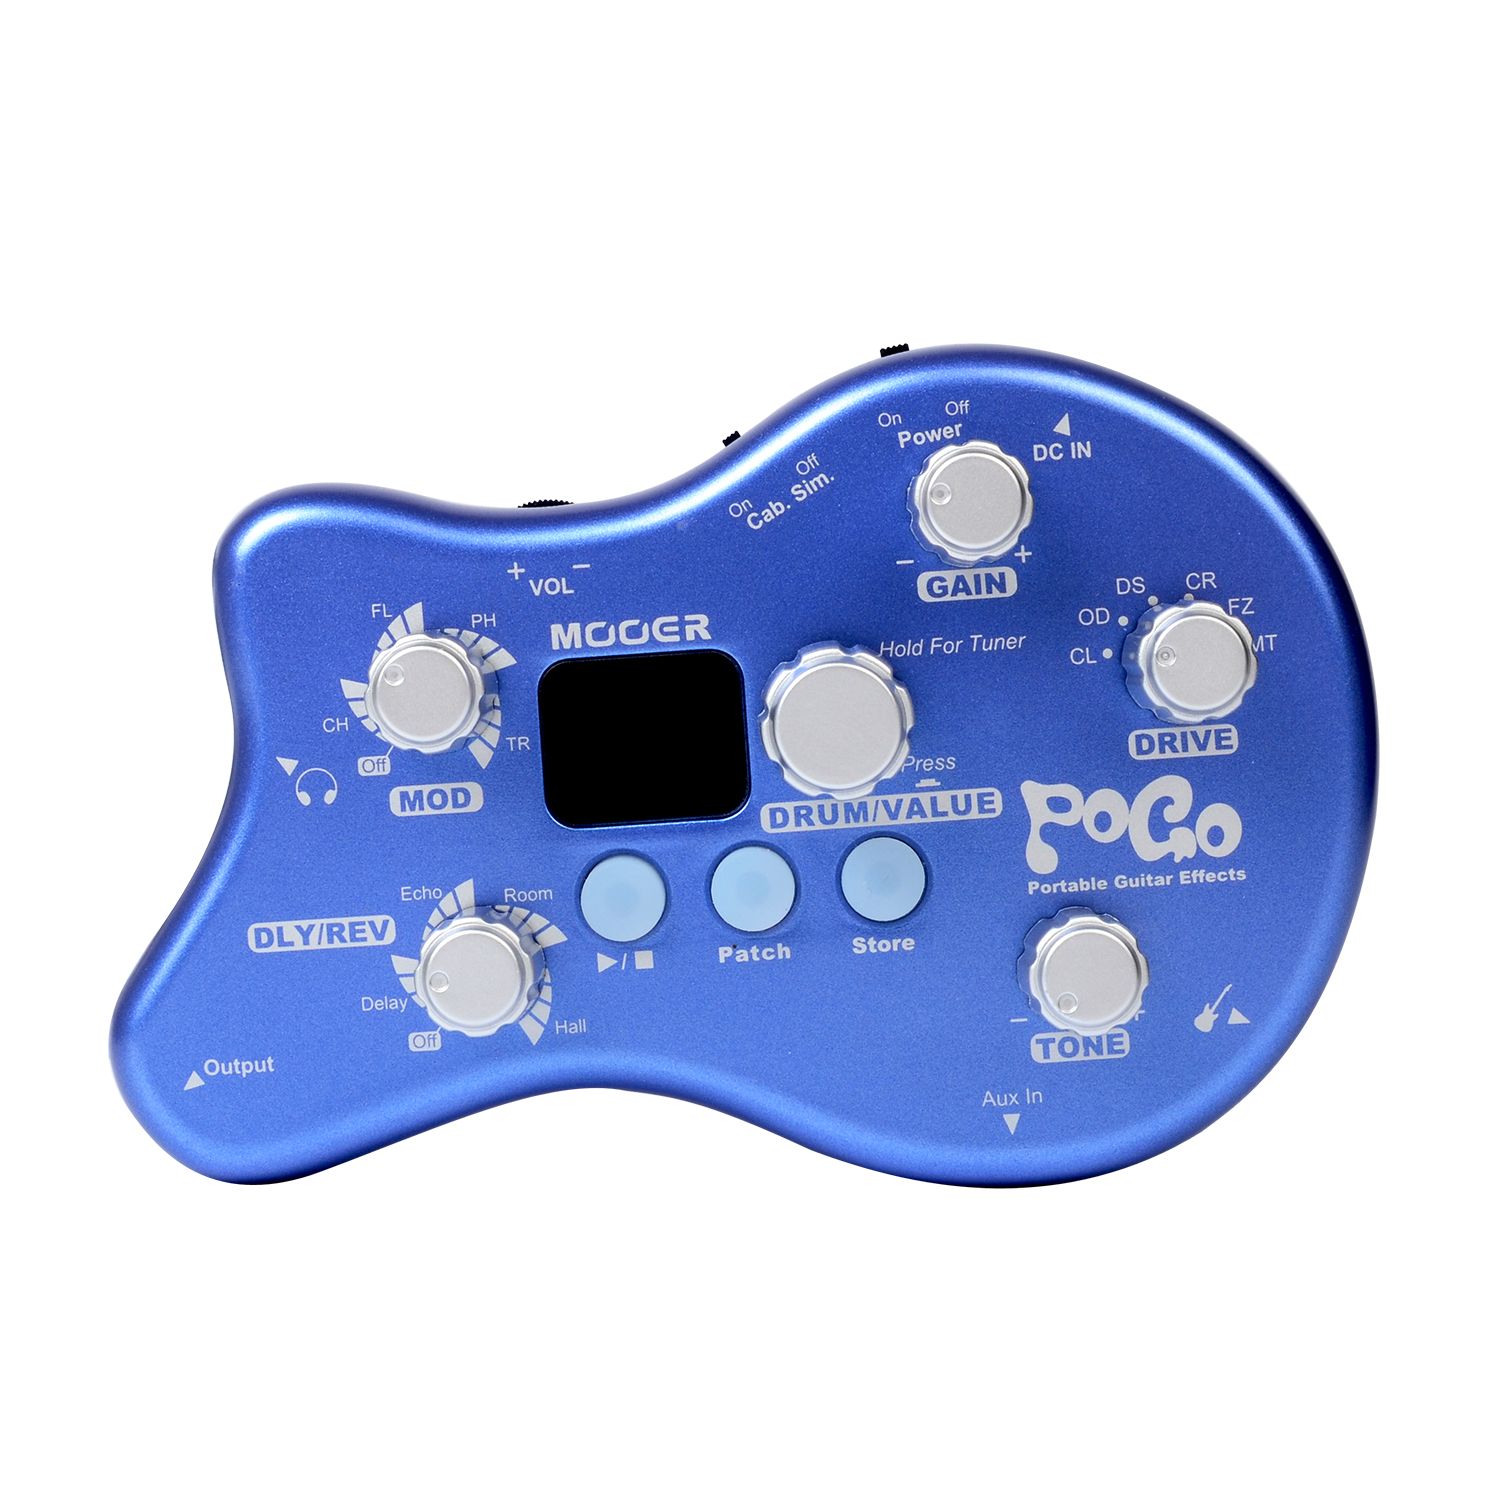 Mooer Pogo Multi Effects Guitar Pedal Tuning Function 5 Effect Modules & 15 Effect Types PE50 mooer vem box 8 effect modules multi guitar processor effects pedal supports loop vocoder including 54 types portable vocal